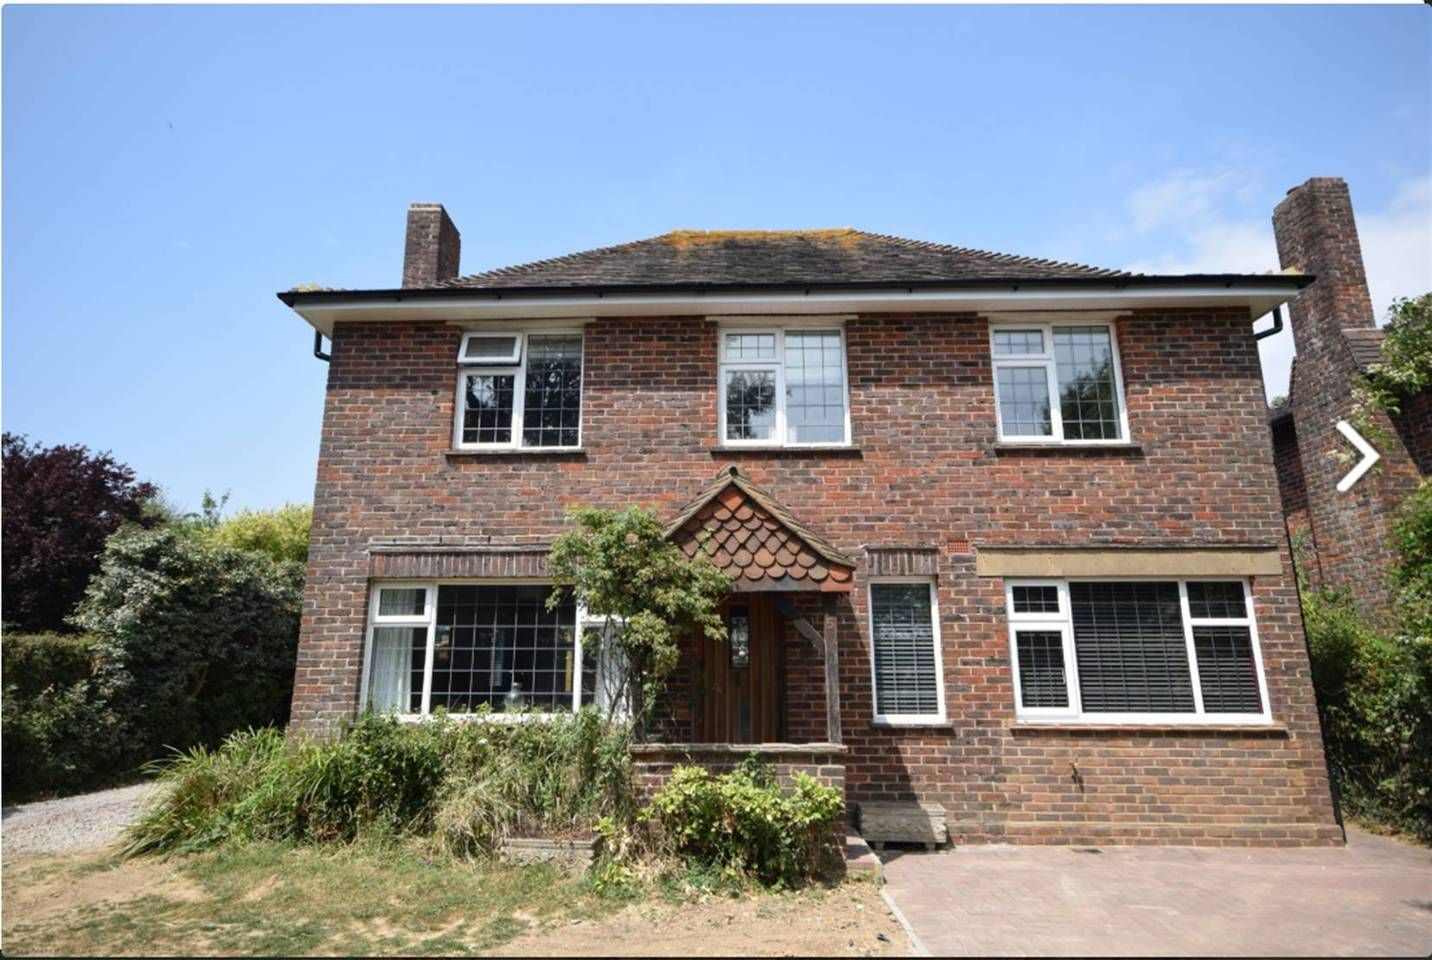 CHARMING 3 BEDROOM HOUSE NEAR WEST WITTERING BEACH